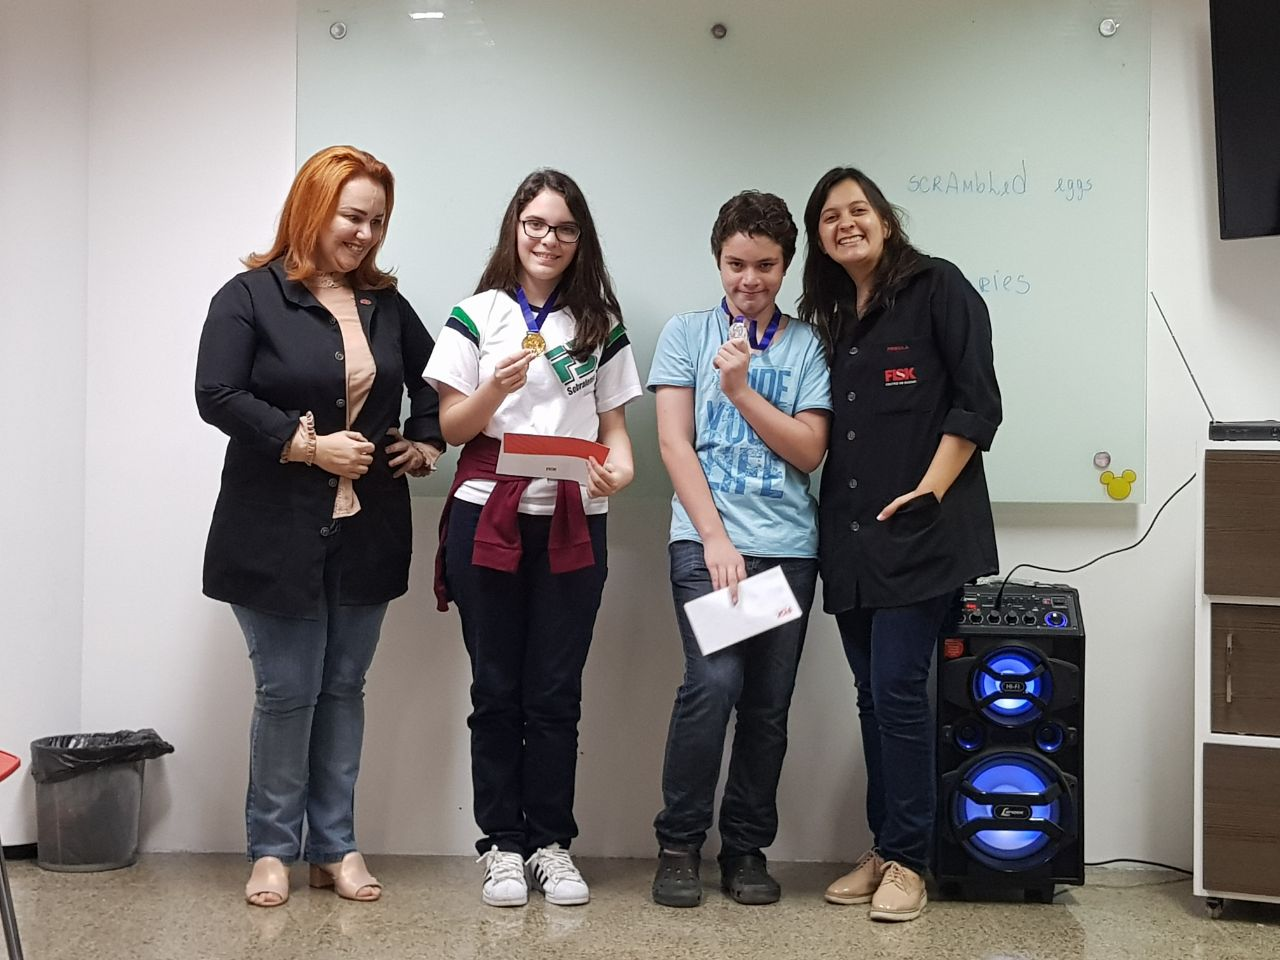 Fisk Sobral/CE - Spelling Bee.